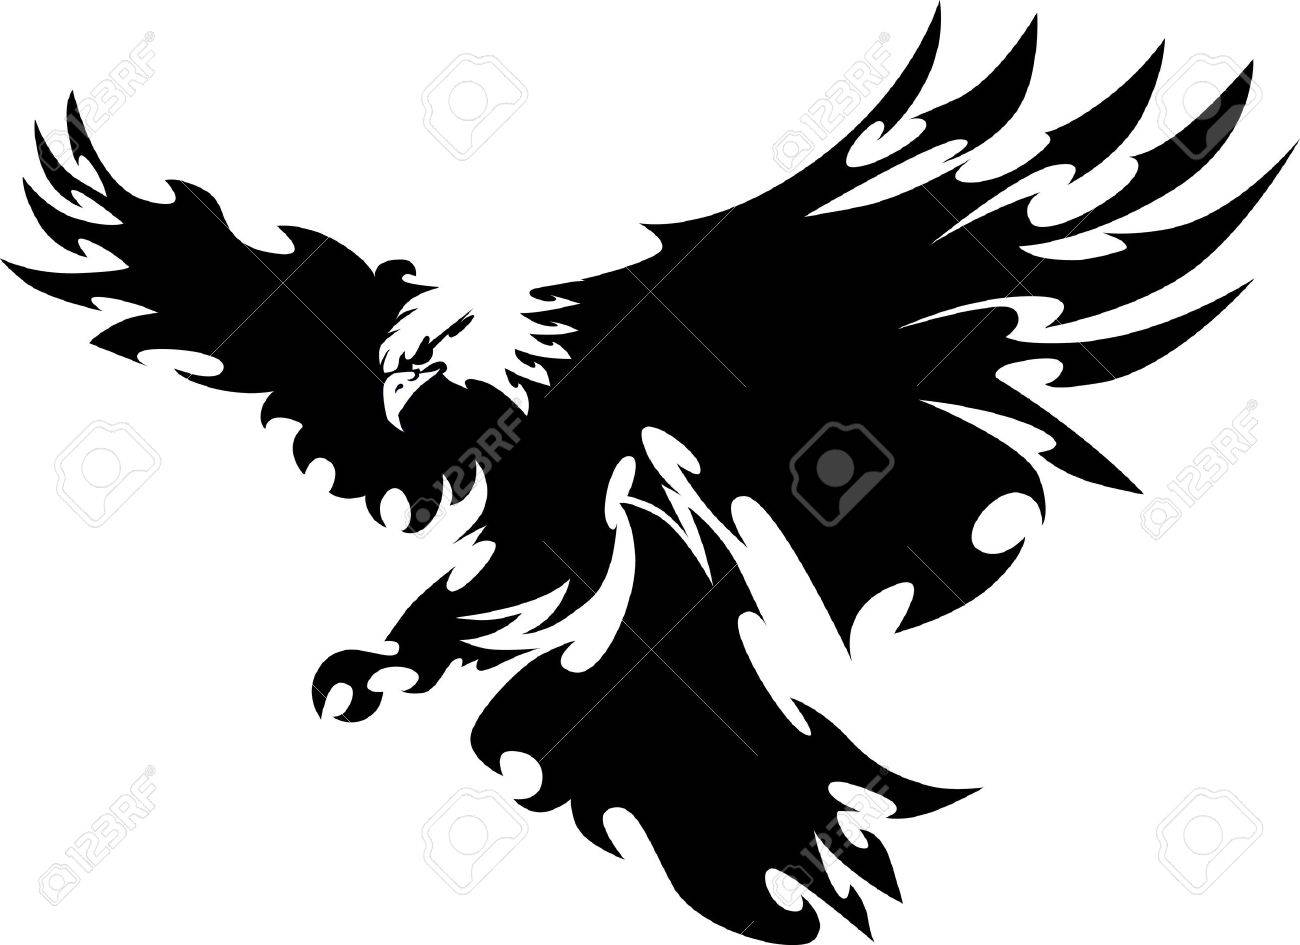 Eagle Mascot Flying Wings Design Royalty Free Cliparts, Vectors ...